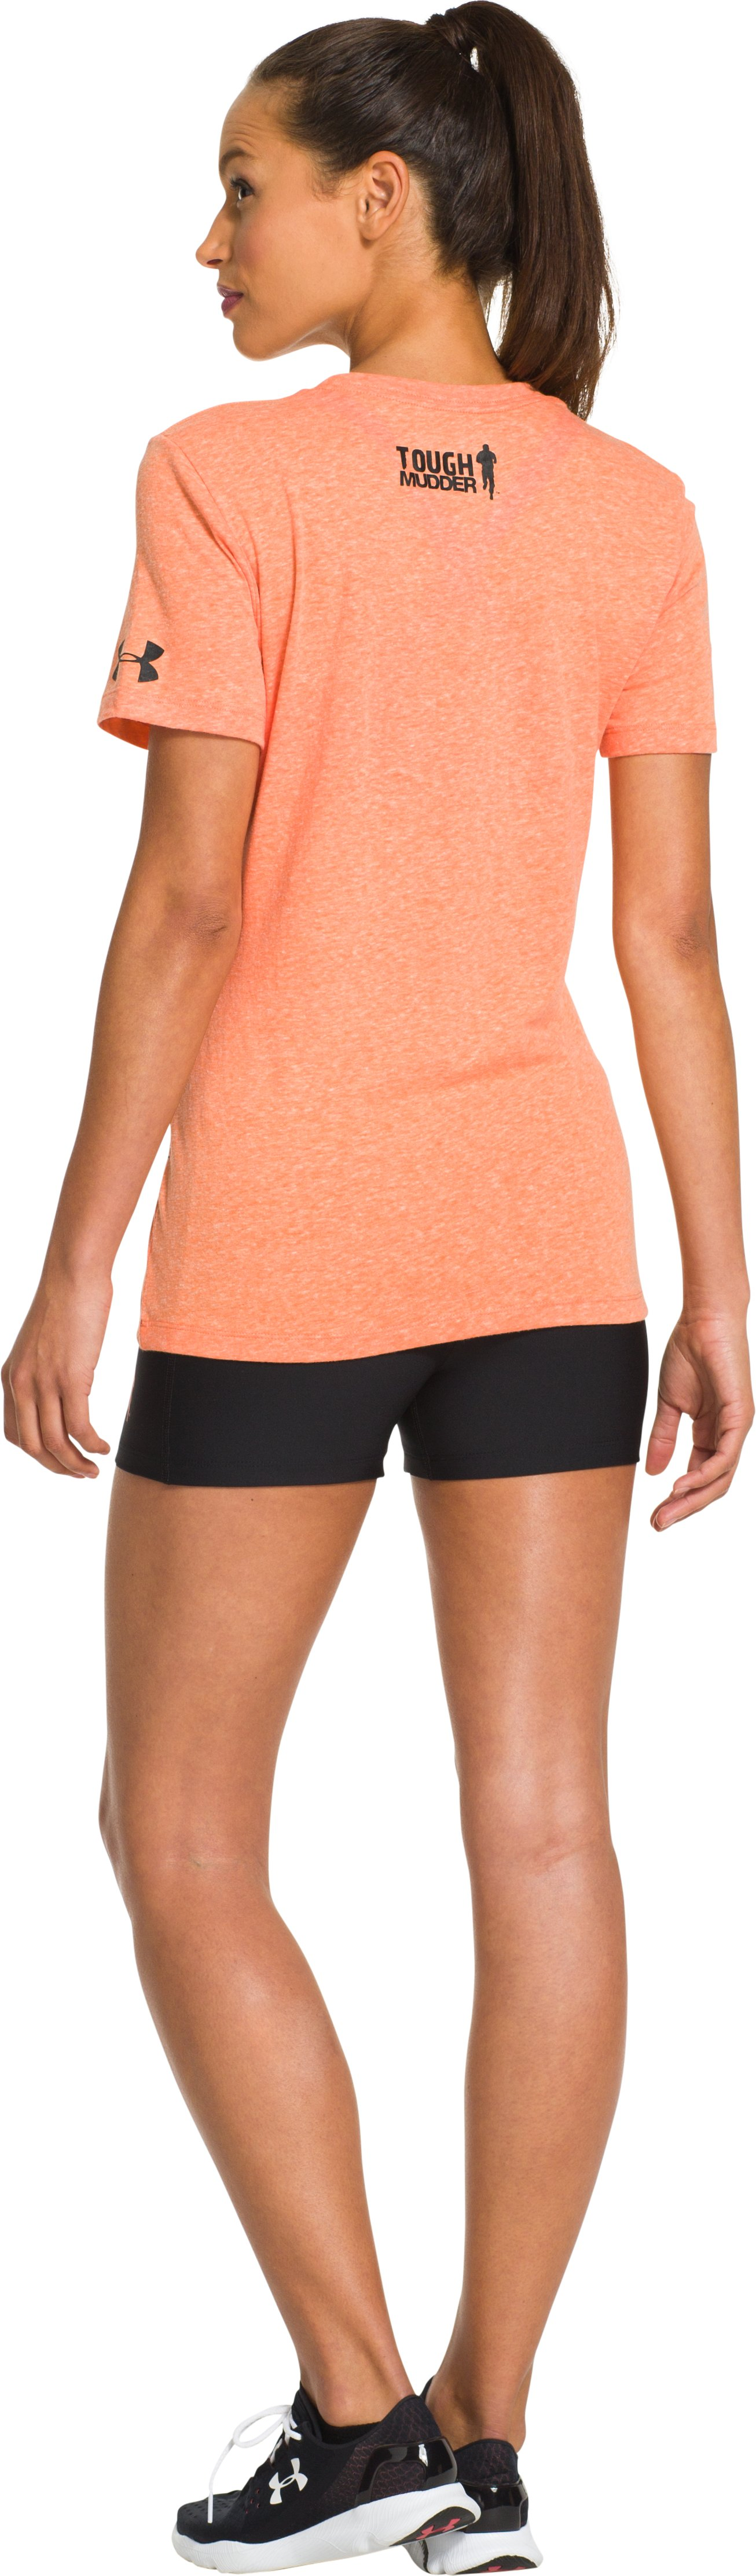 Women's UA Tough Mudder Graphic T-Shirt, Vivid, Back